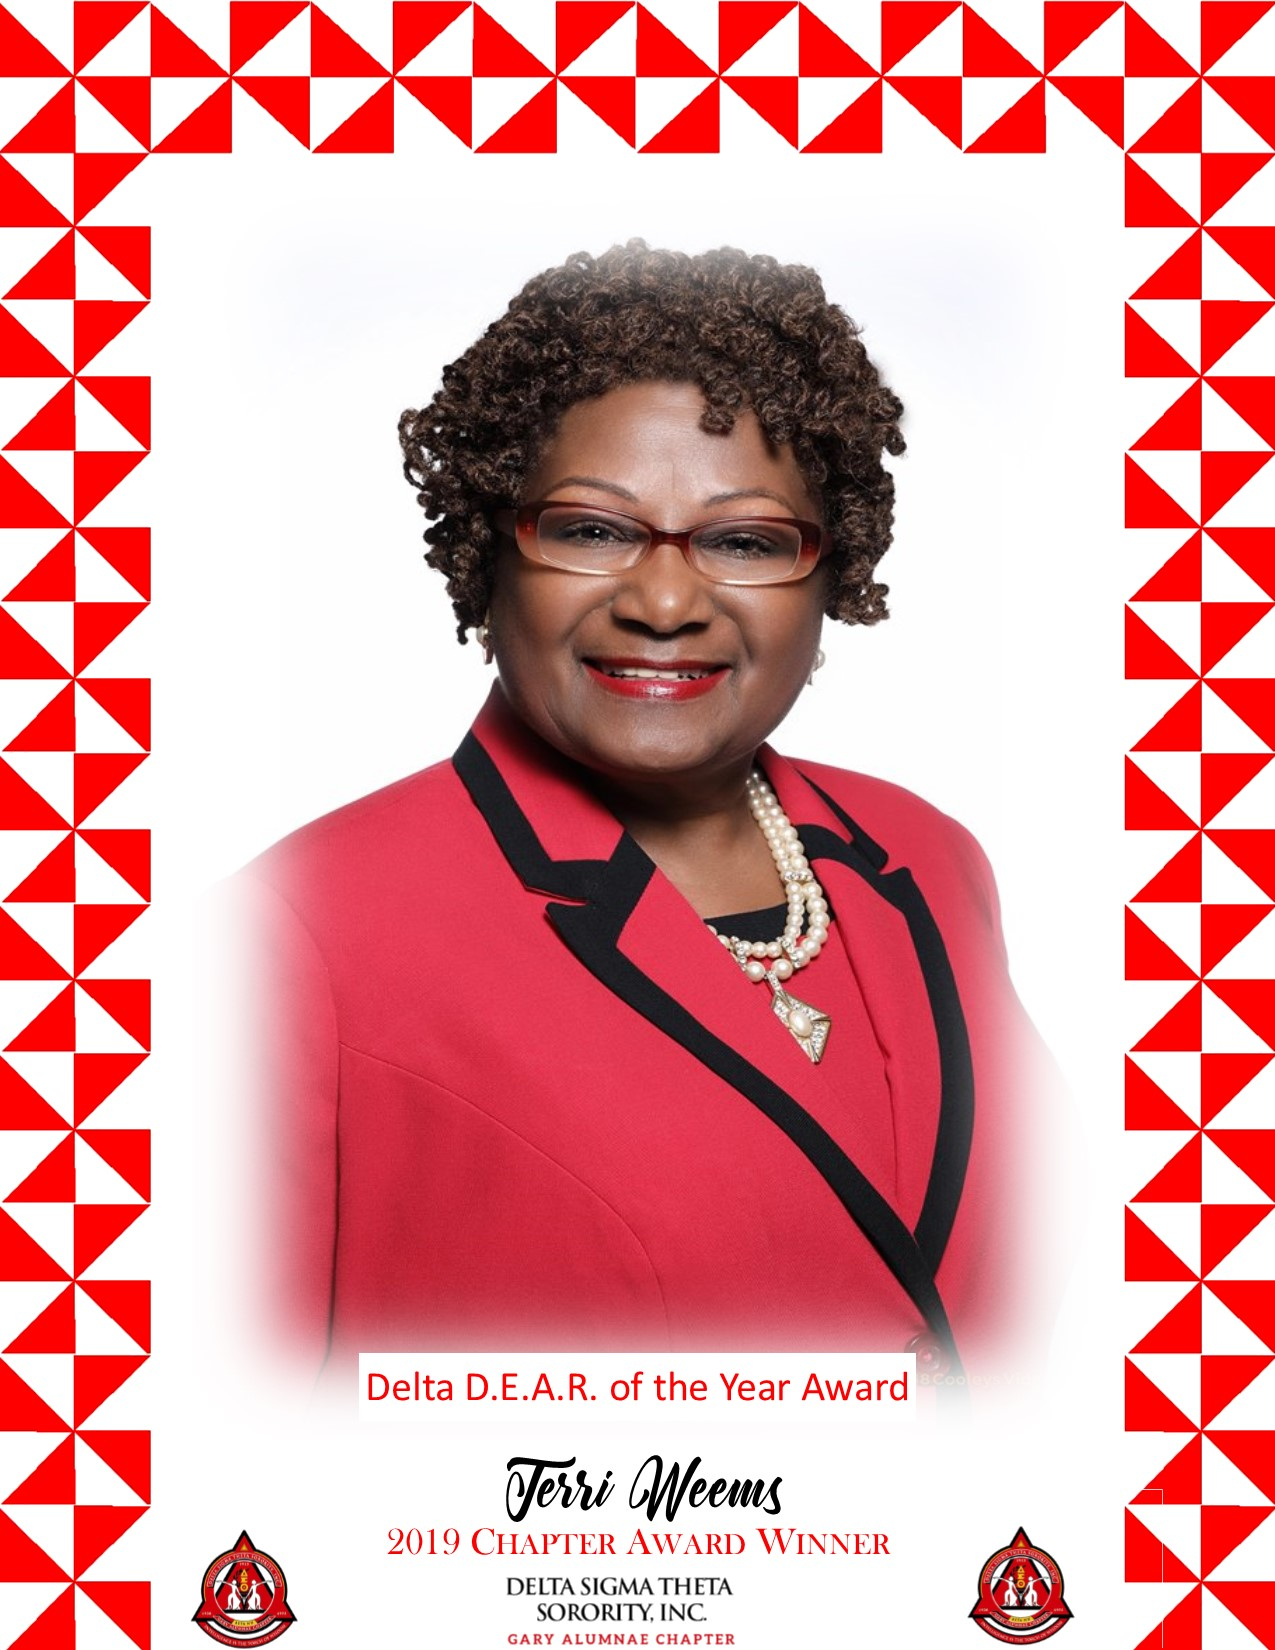 Delta DEAR of the Year